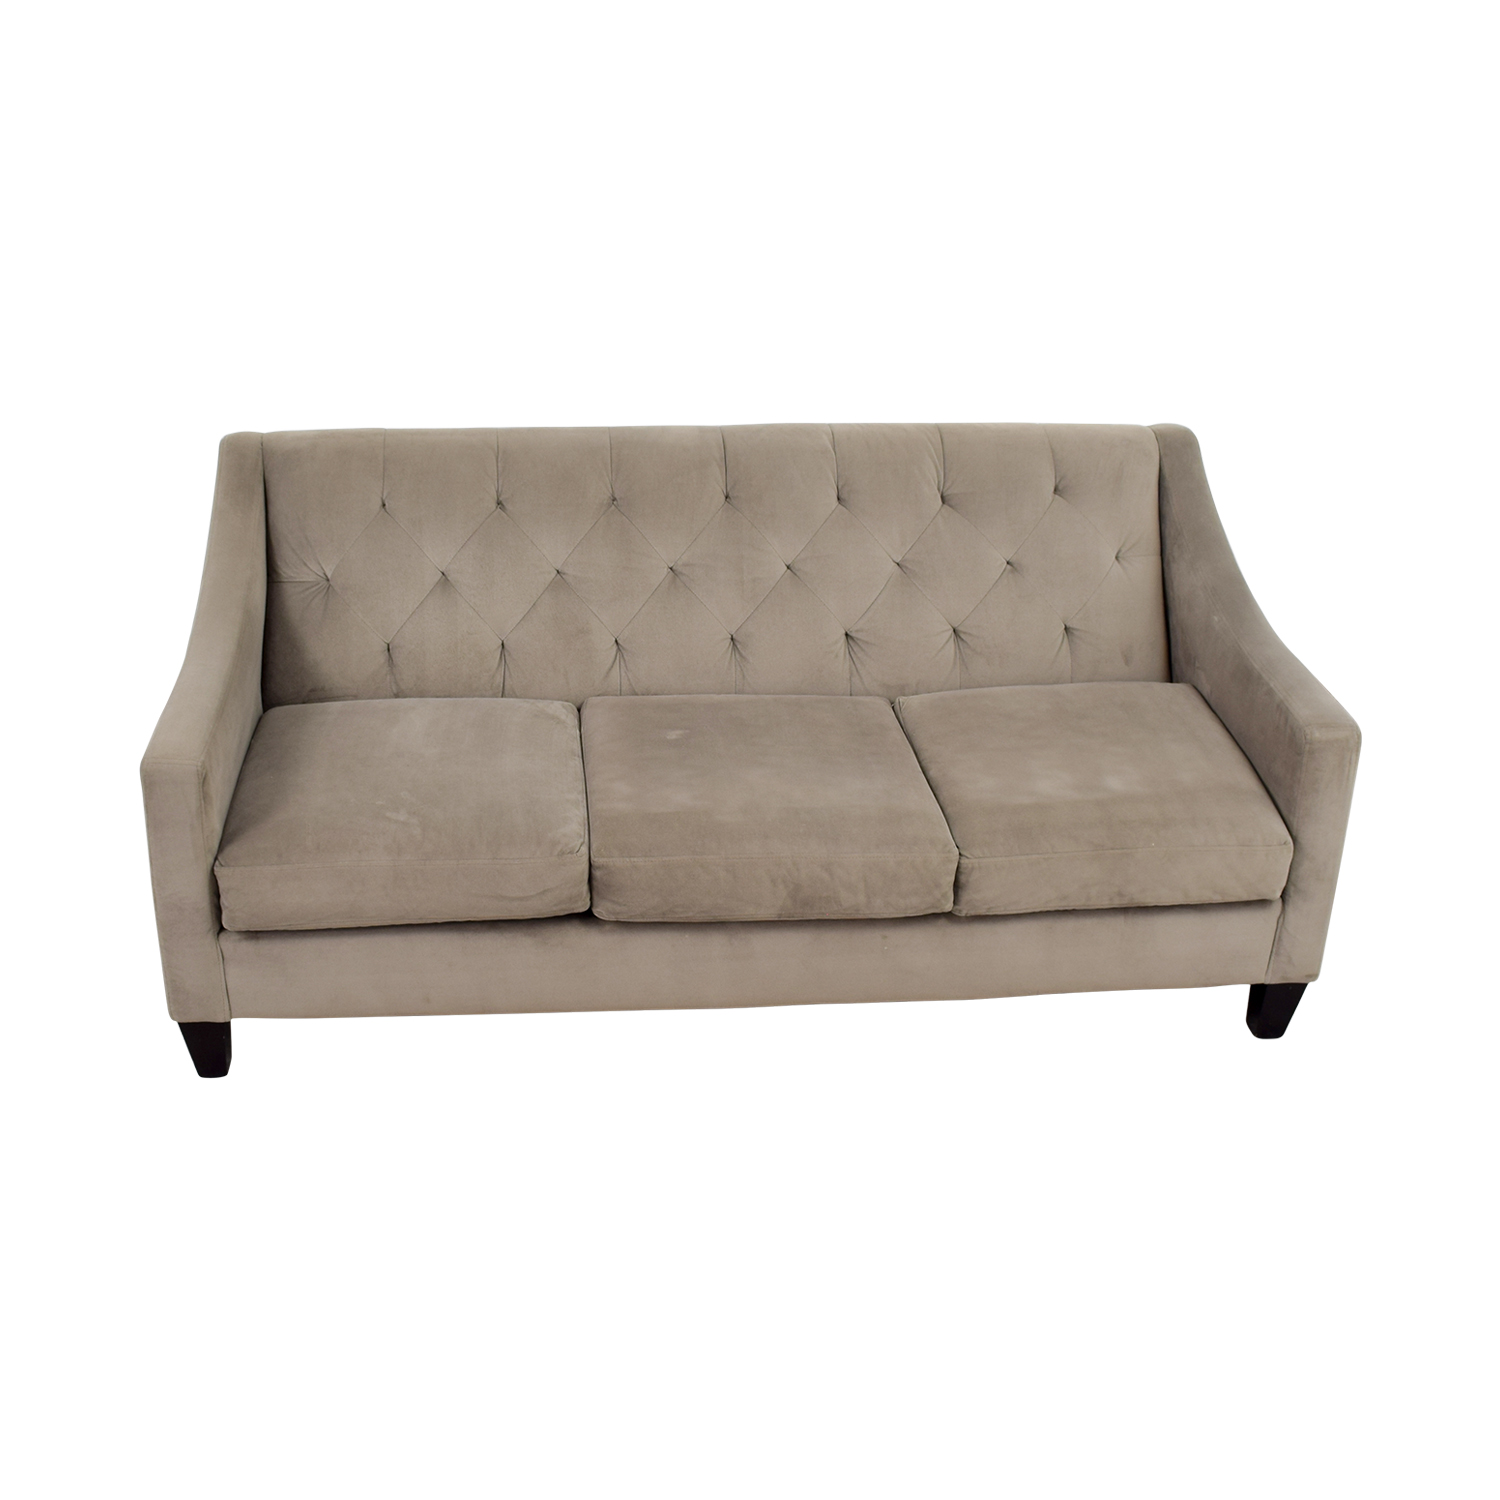 shop Macys Gray Microfiber Tufted Three-Cushion Couch Macys